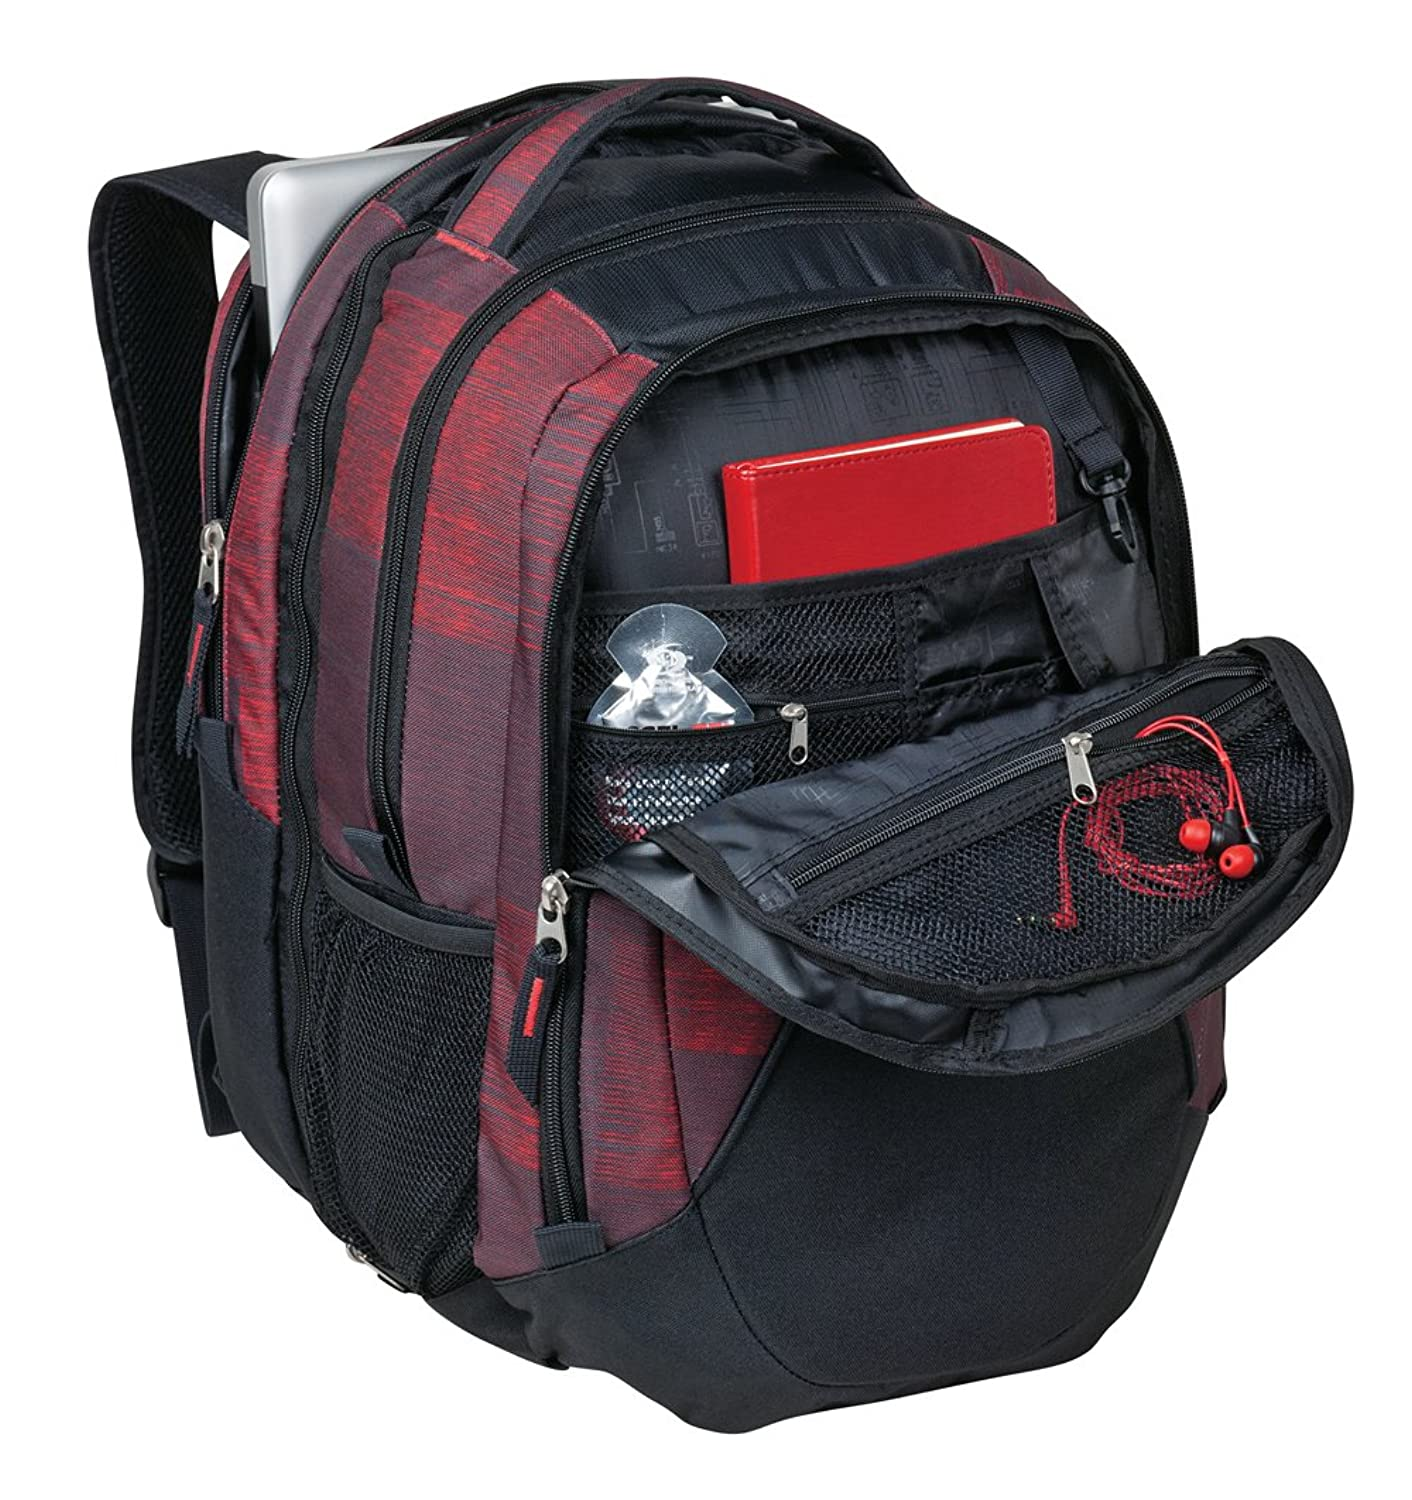 Amazon.com : OGIO Black Juggernaut Pack (Black) : Basic ...